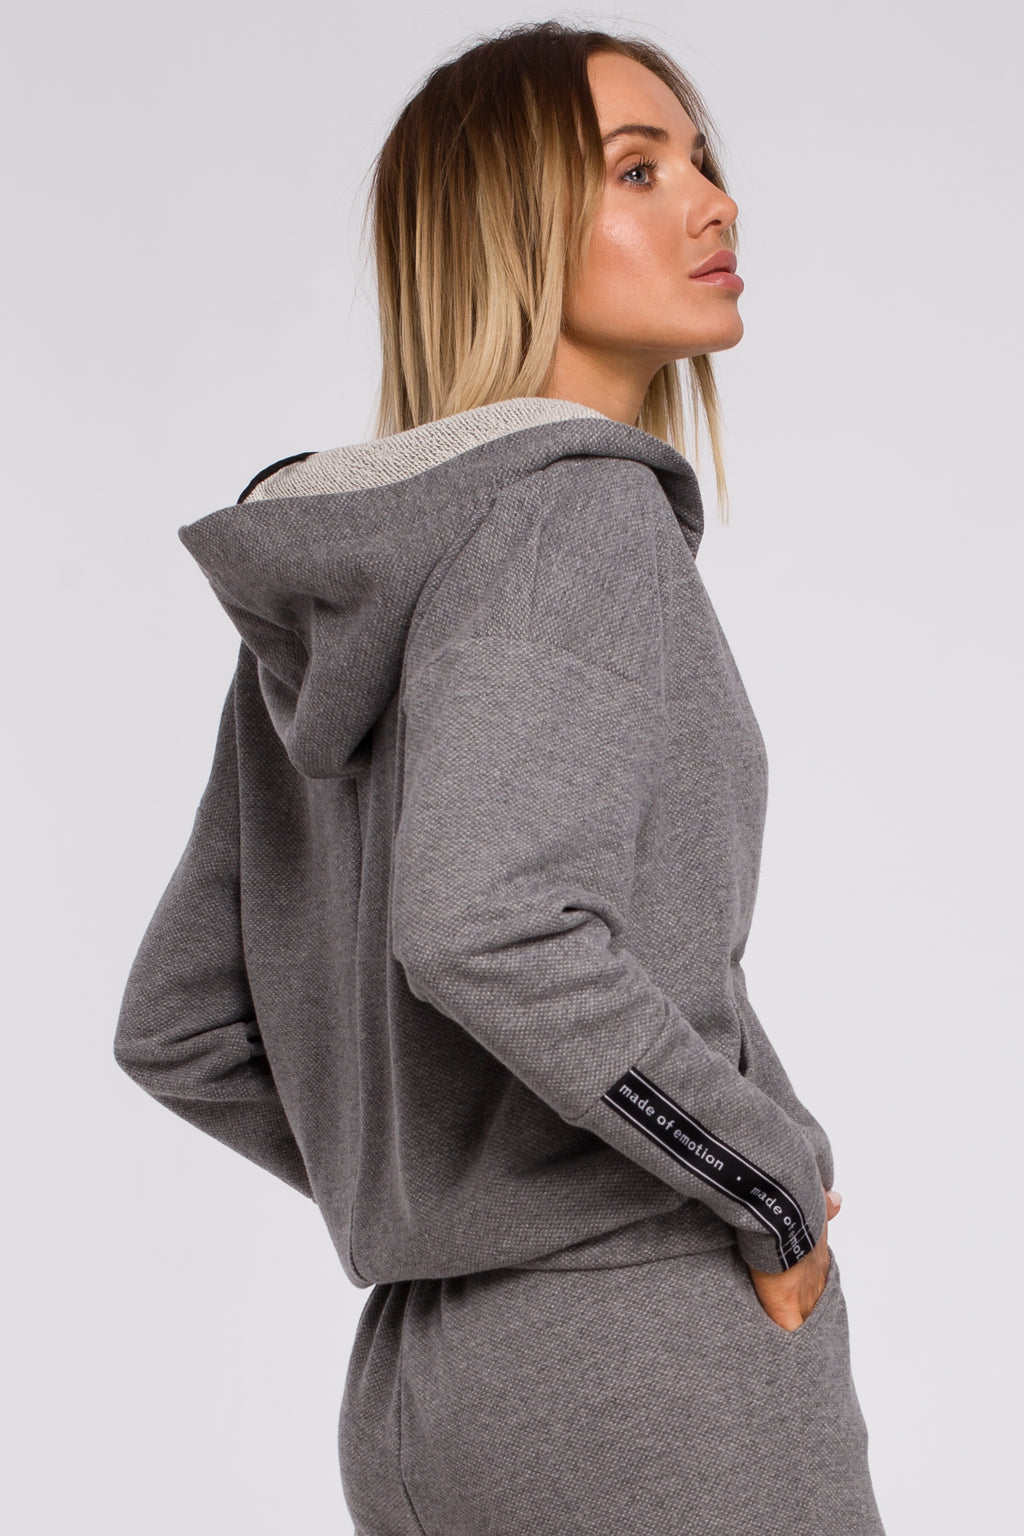 Kangaroo Pocket Grey Hoodie With Wrap Front - So Chic Boutique